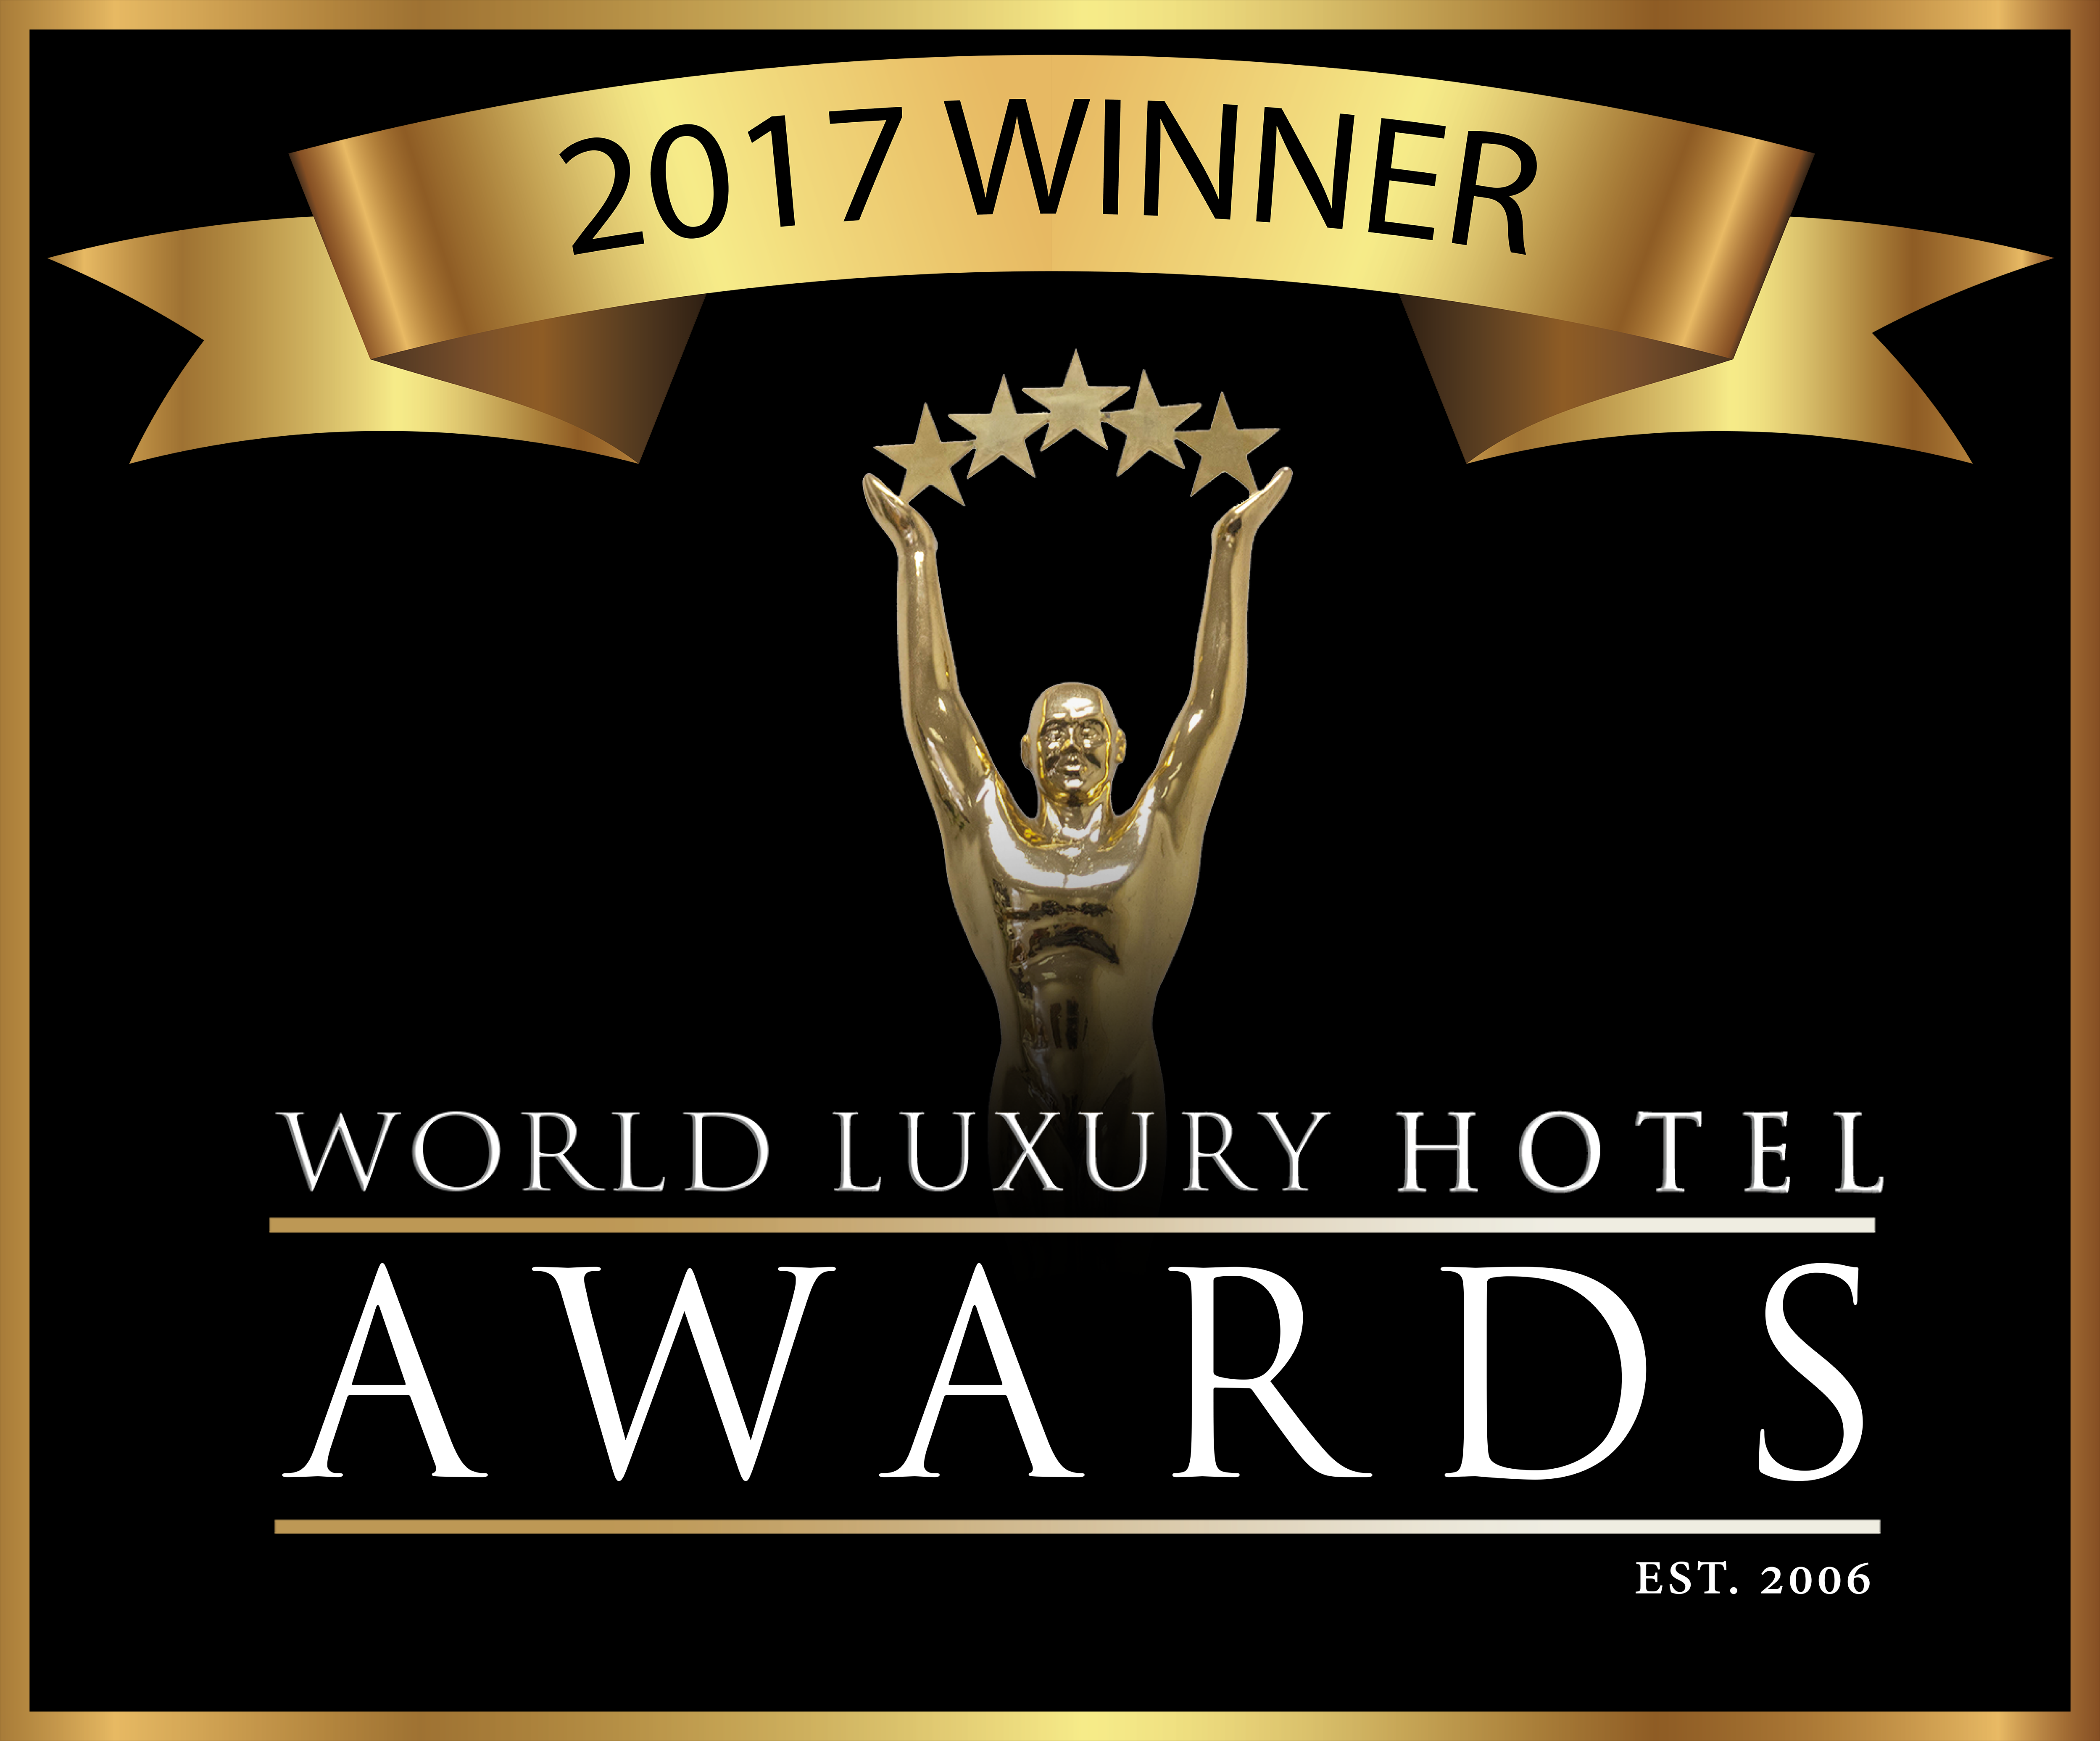 Word Luxury Hotel